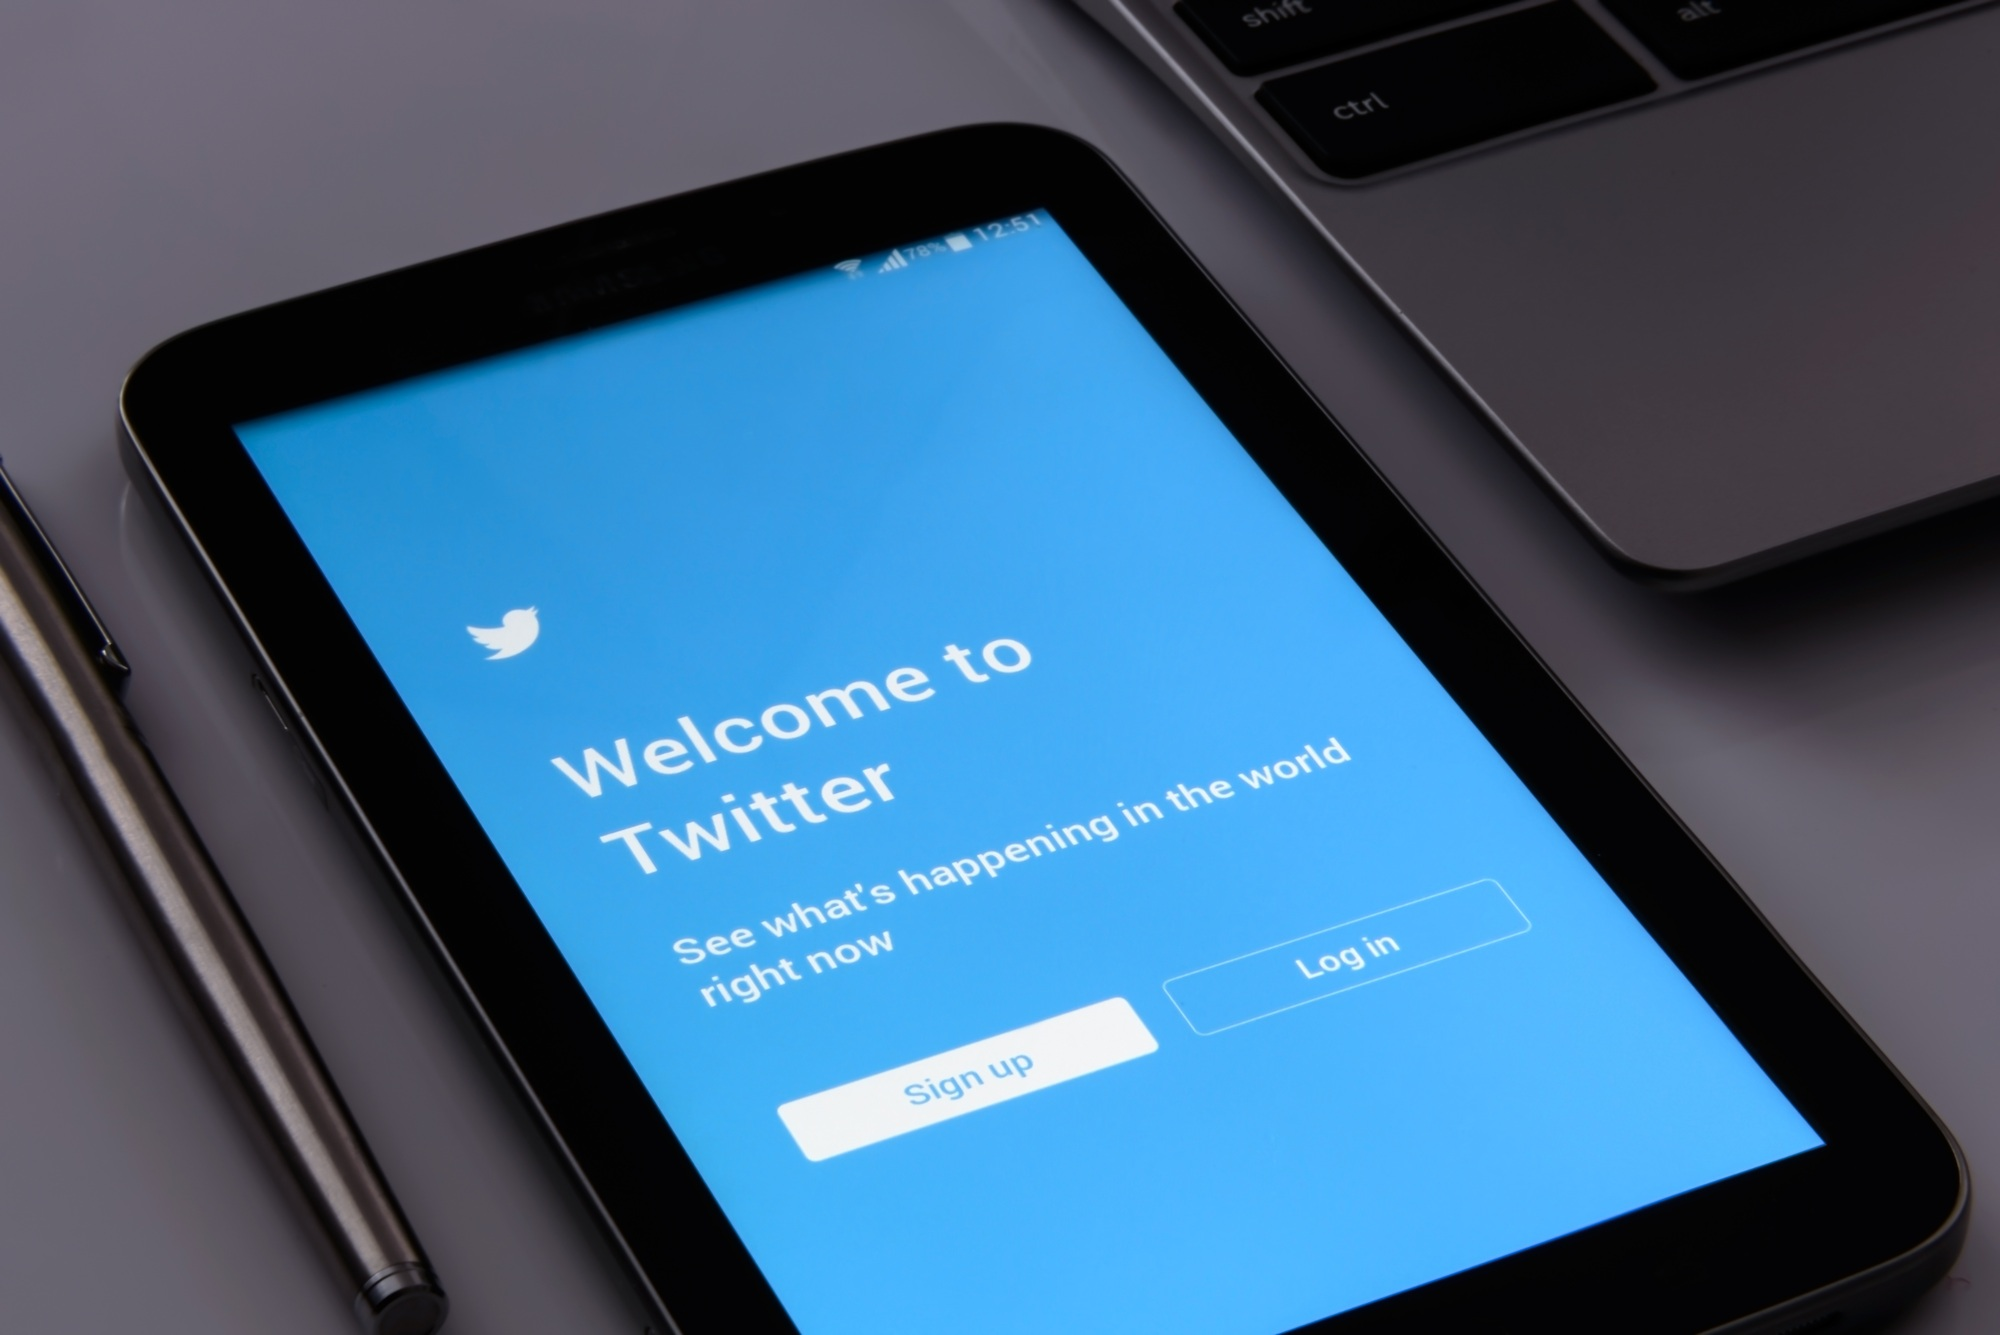 Soar to New Heights: 5 Twitter Marketing Ideas for Small Businesses